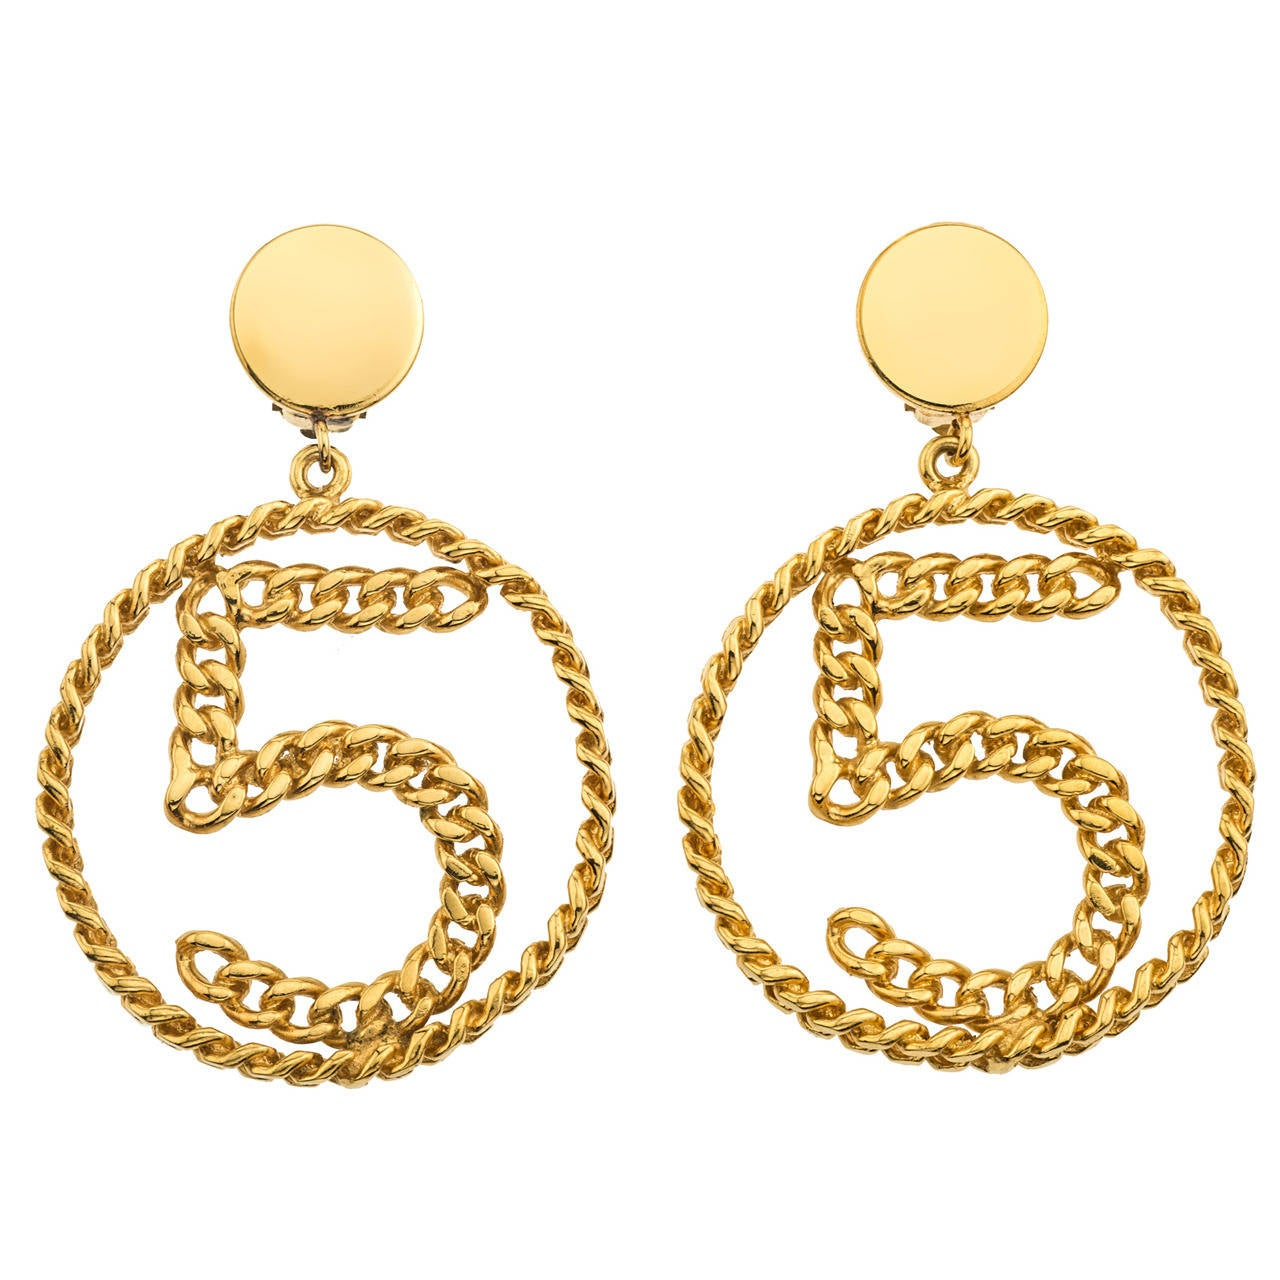 Vintage Chanel No 5 Chain Motif Earrings At 1stdibs